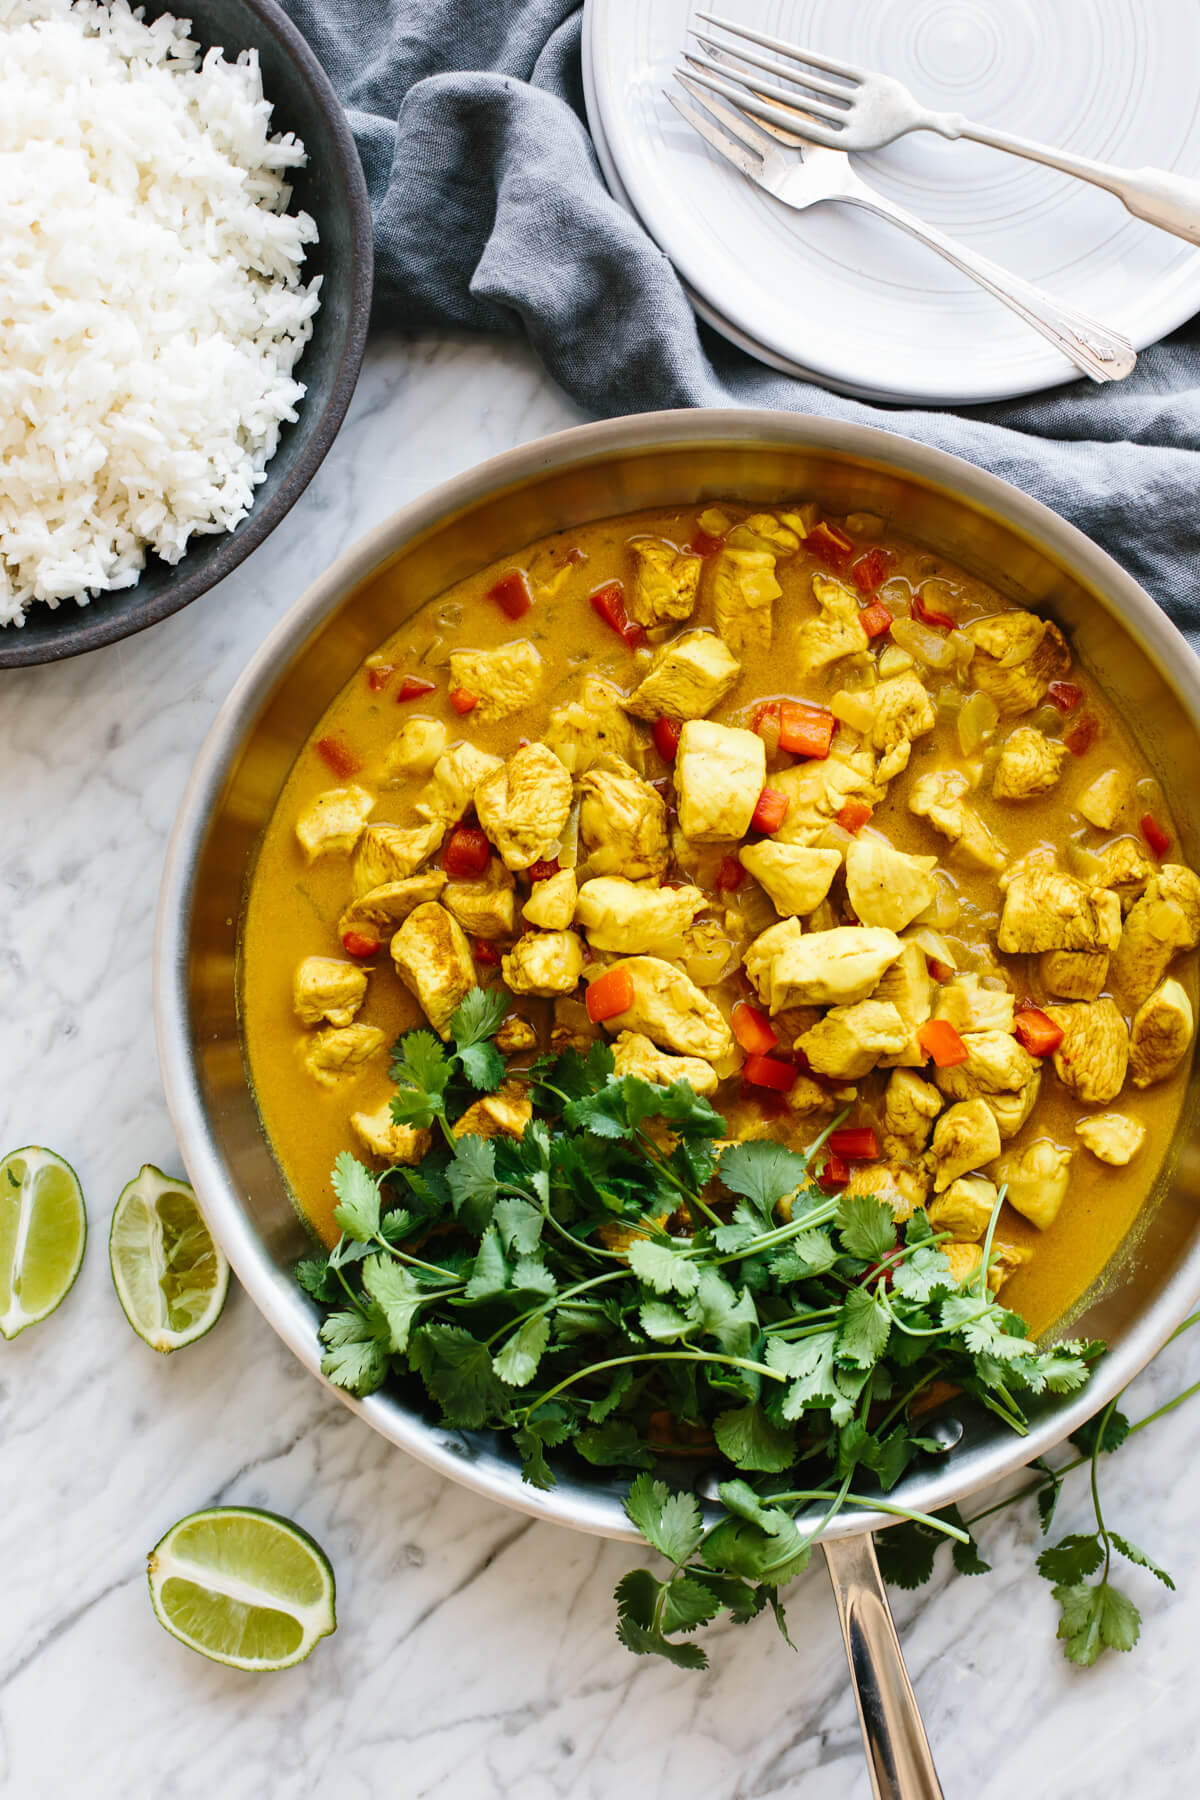 Coconut curry chicken in a pan.